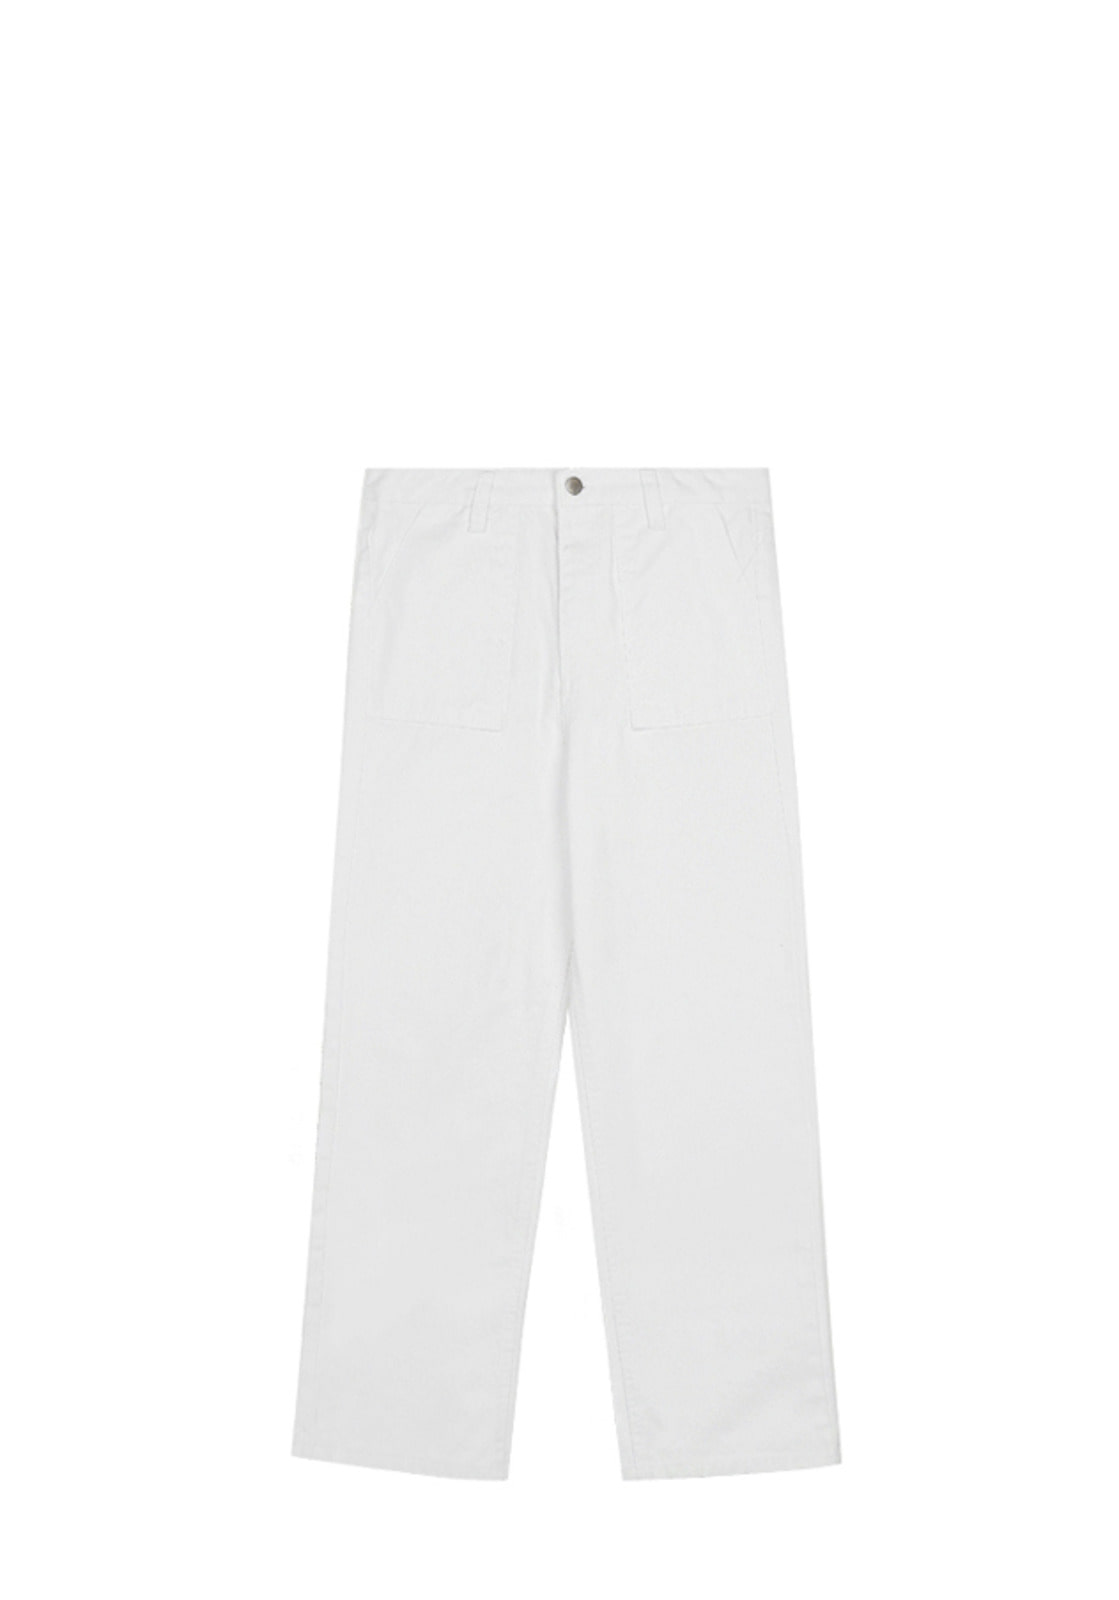 V225 COTTON HIGH WEST PANTS WHITE